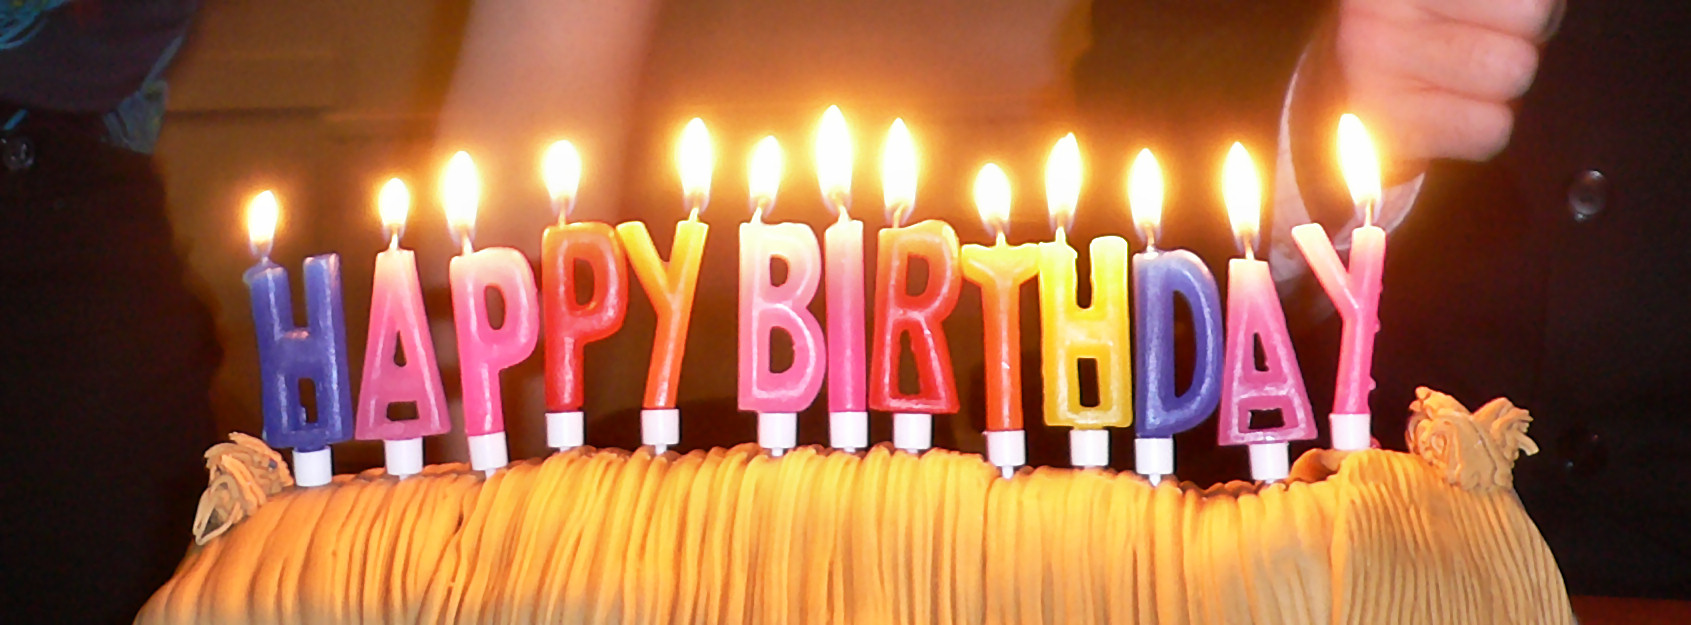 File:Birthday candles.jpg - Wikipedia